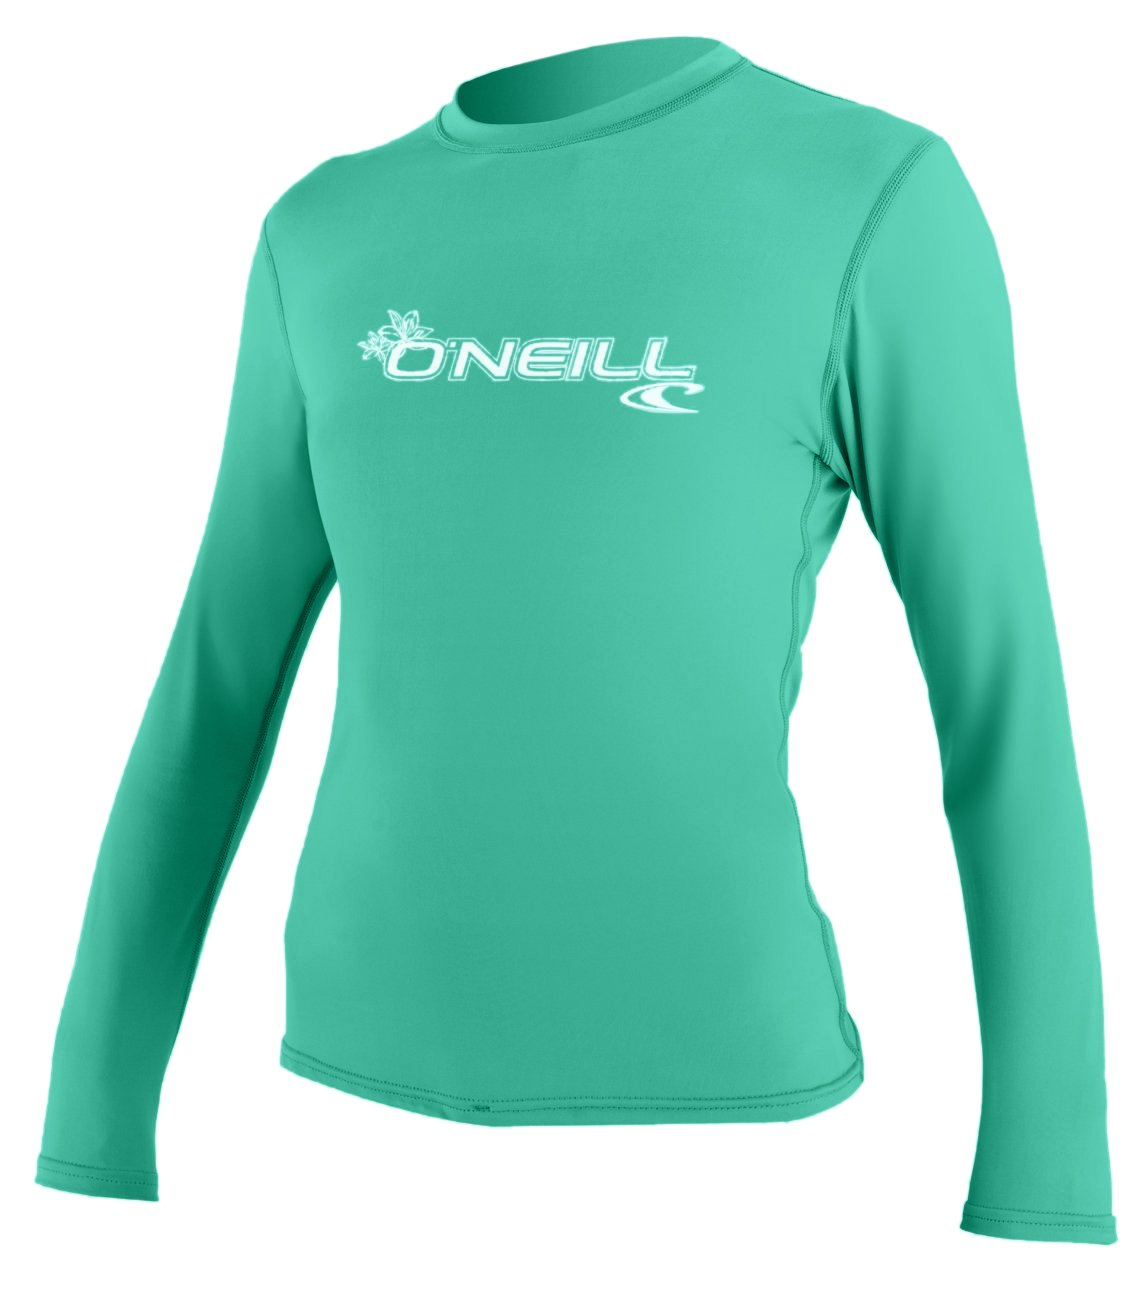 O'Neill Women's Basic Skins Upf 50+ Long Sleeve Sun Shirt, Seaglass, Small